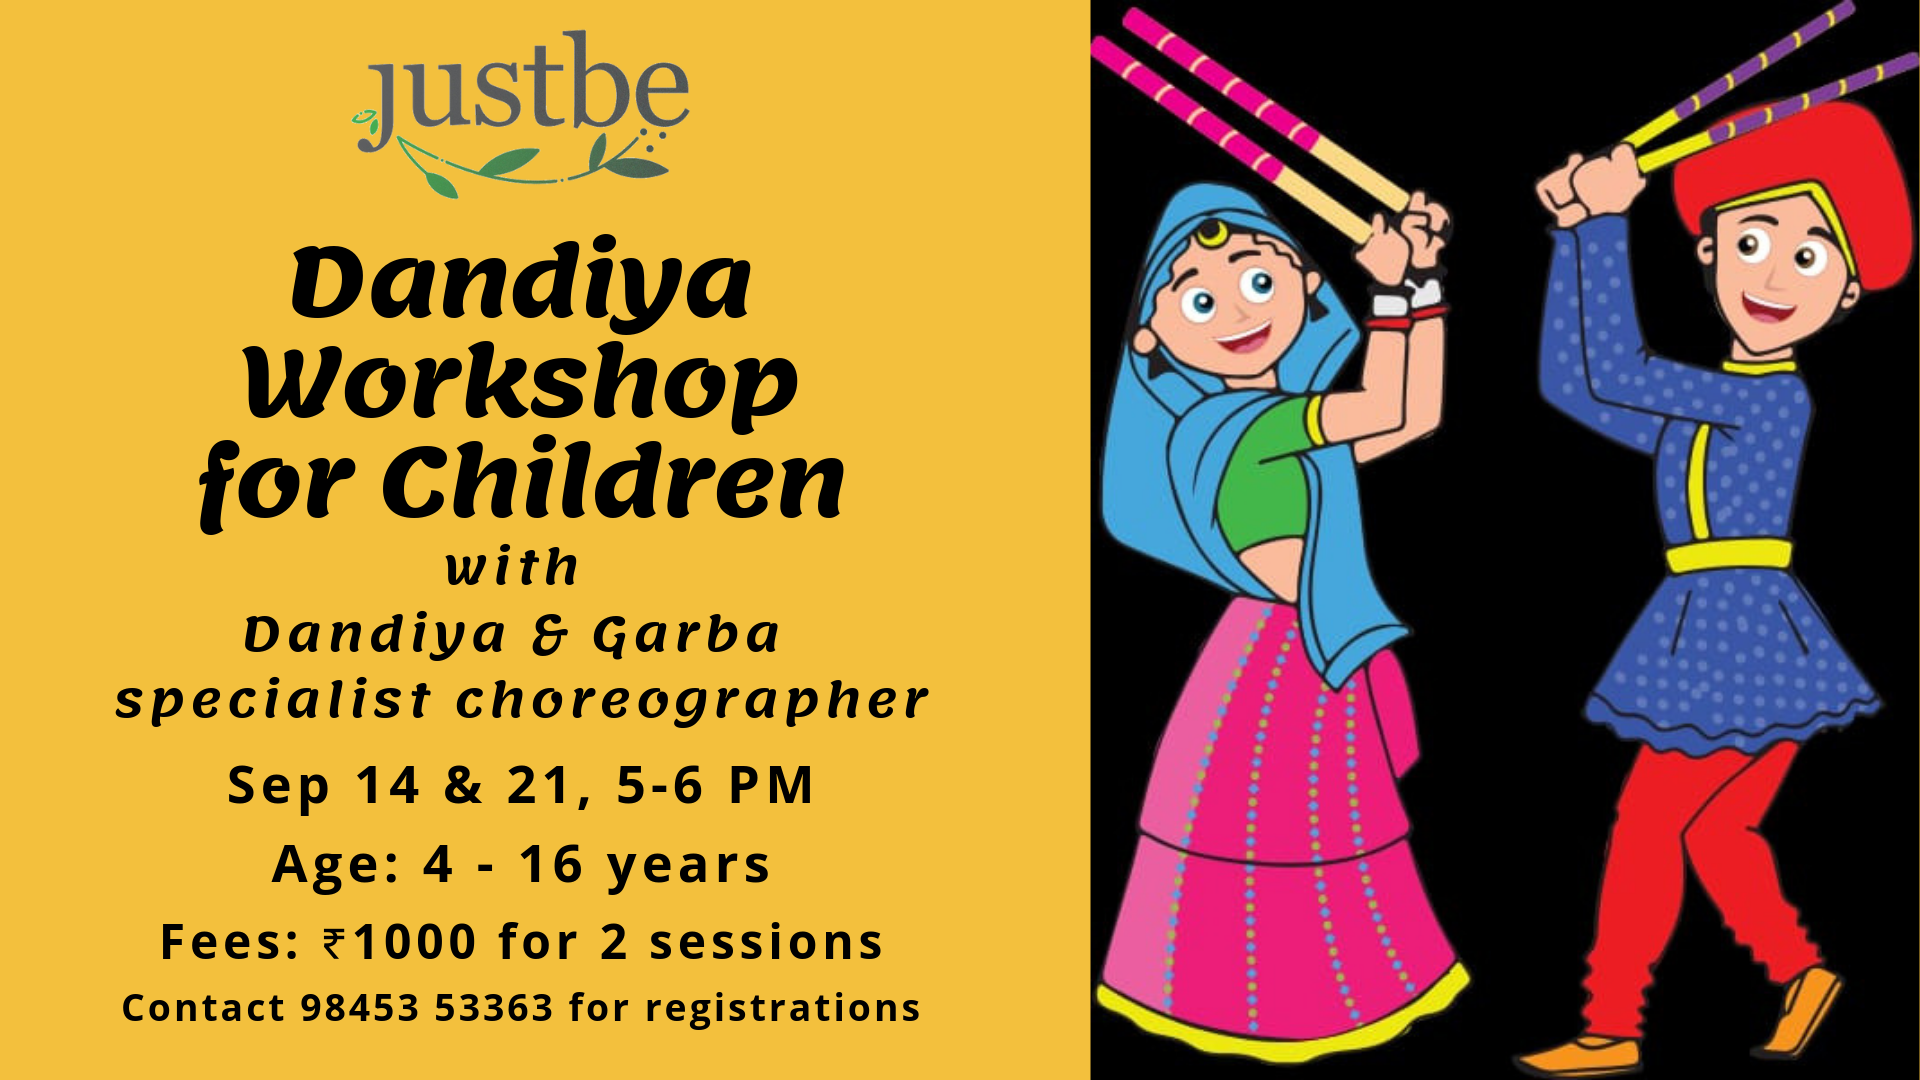 Dandiya Workshop for Children (1).png